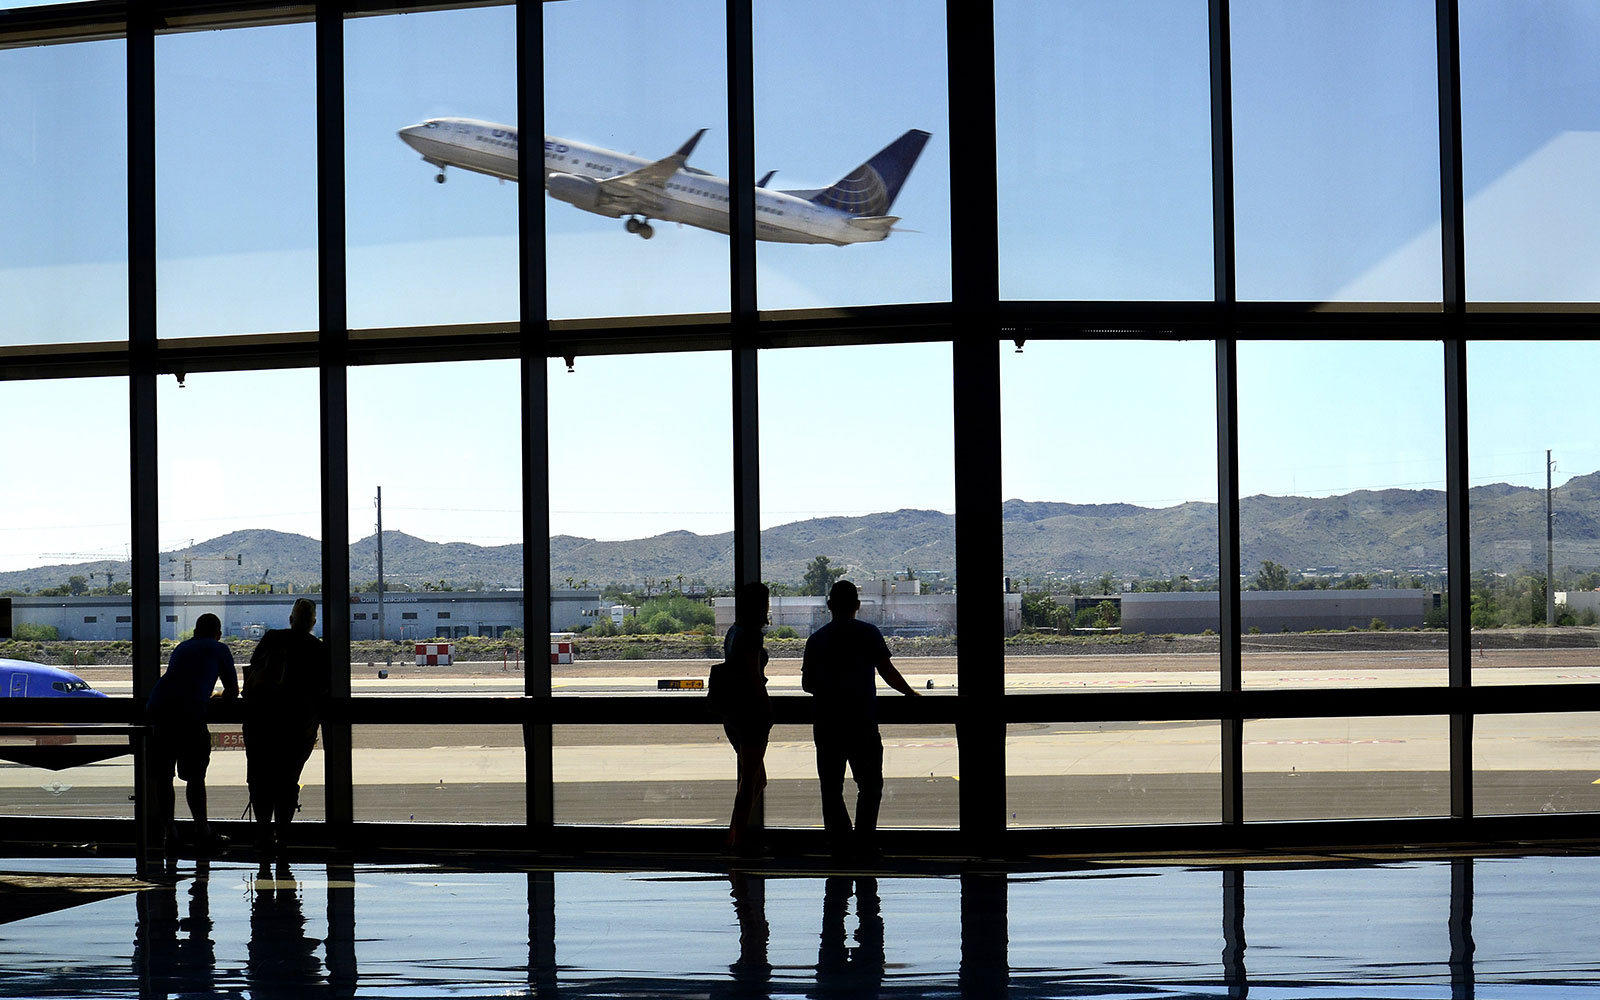 What It's Like Inside Airlines' Secret Frequent Flier Clubs